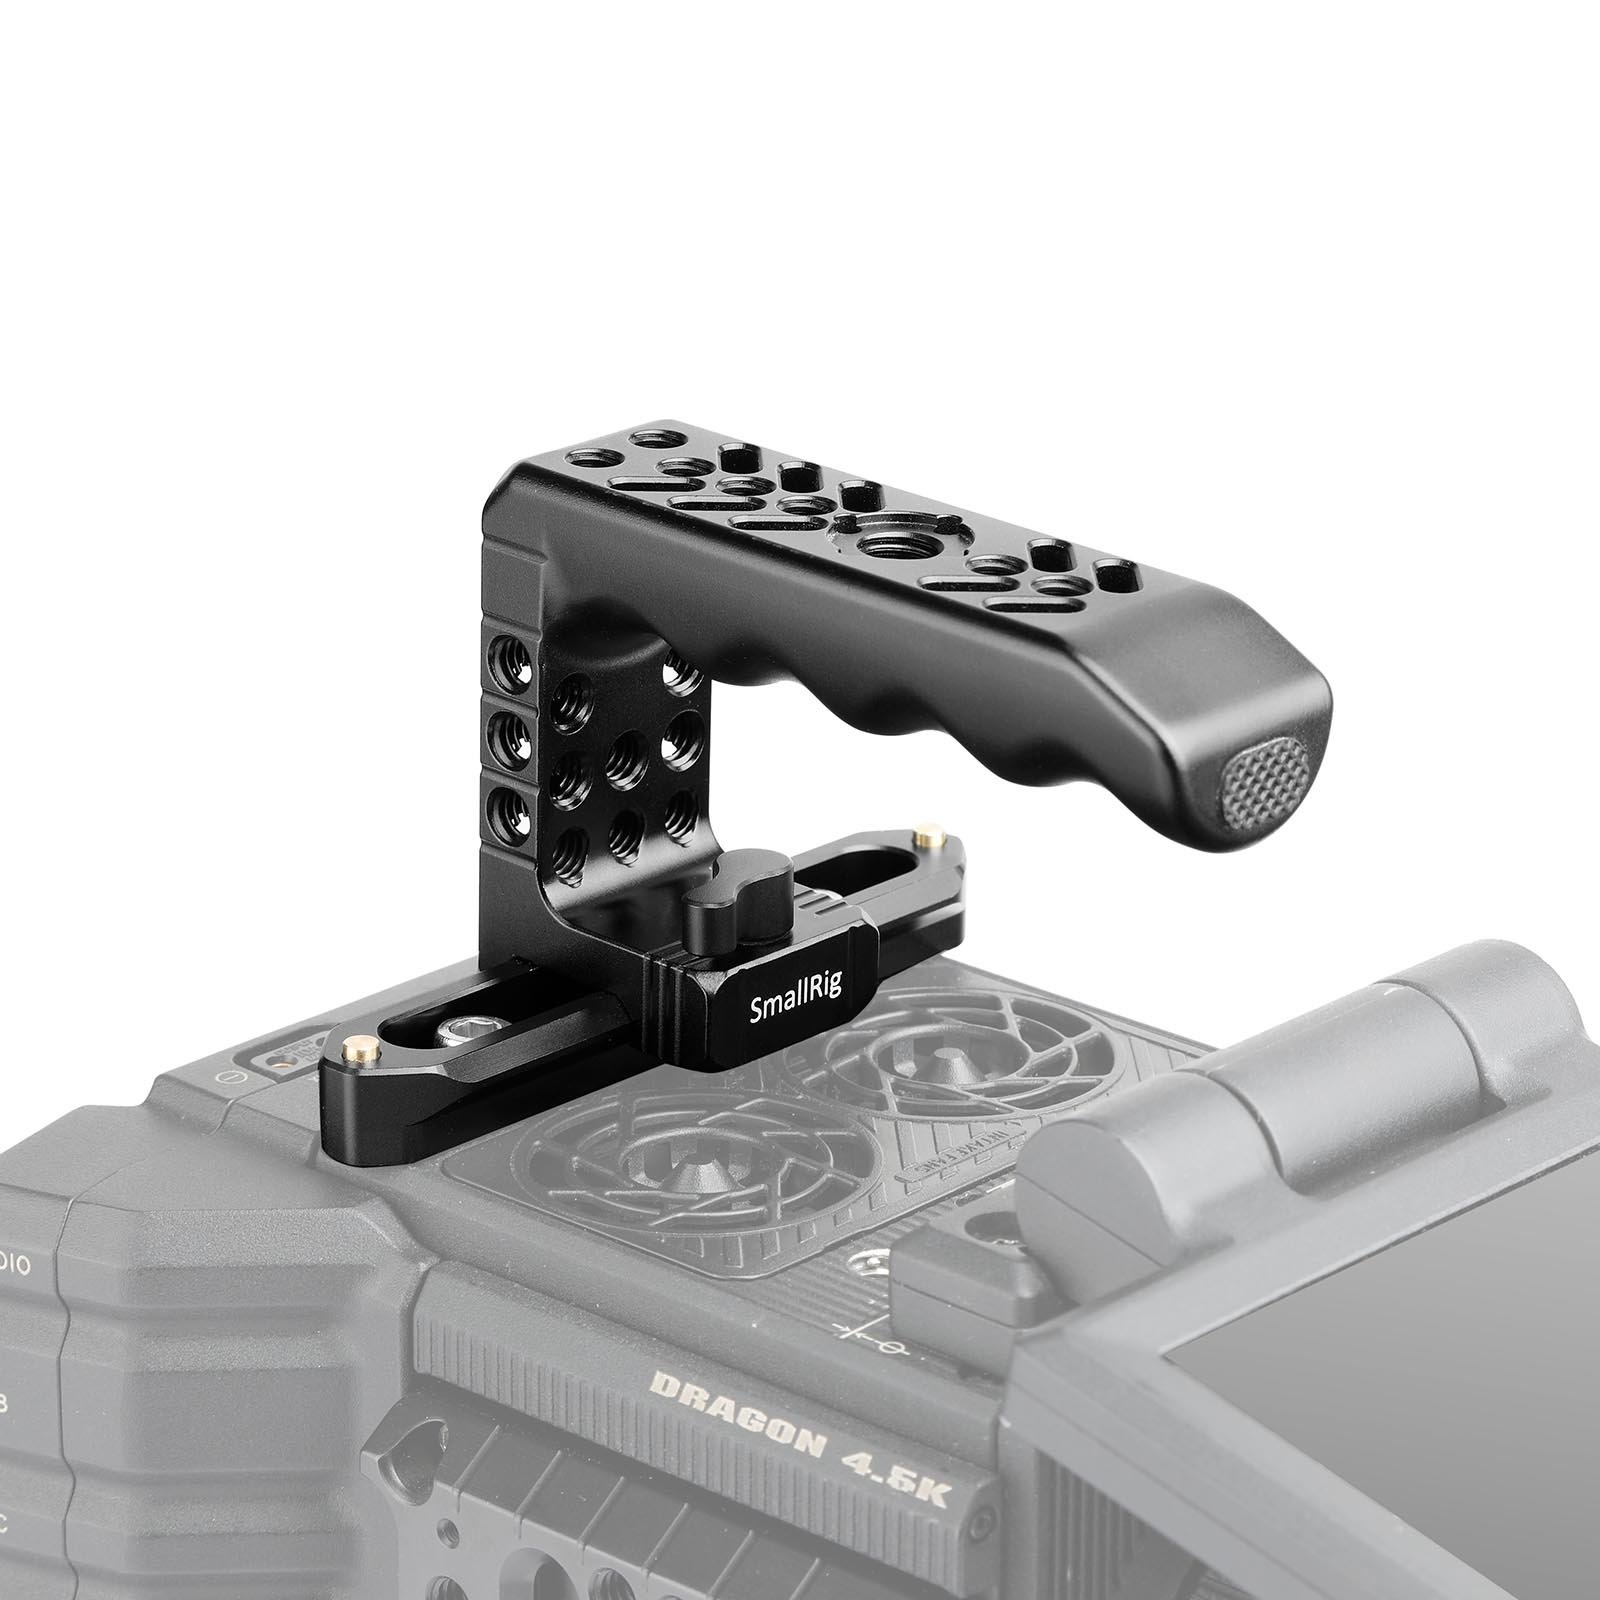 SMALLRIG Top NATO Handle - Camera Cheese Handle with NATO Rail and Locating Pins for RED Camera and Other Devices -1961 by SMALLRIG